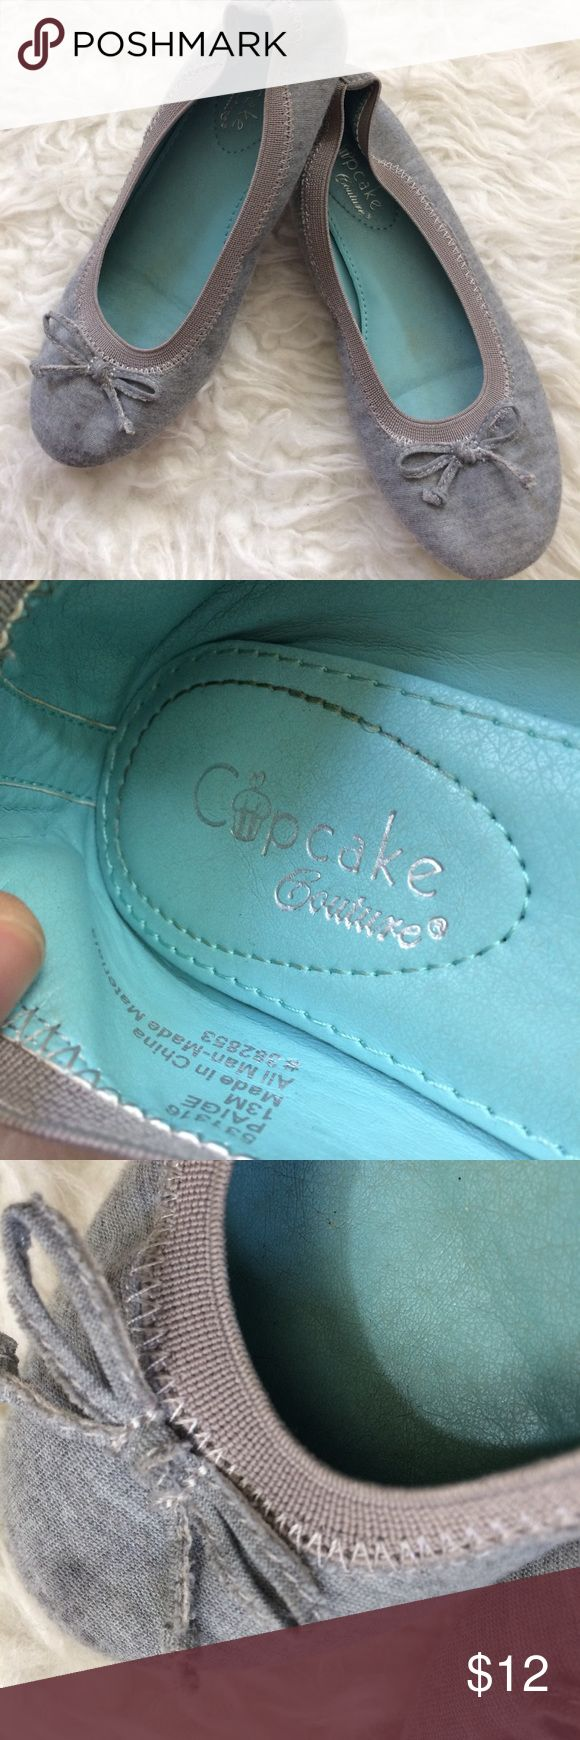 Cupcake couture Chambray ballerina flats girls 13 Very good condition light blue textile with bow detail ballerina flats from Cupcake couture girls size 13M. Cupcake Couture Shoes